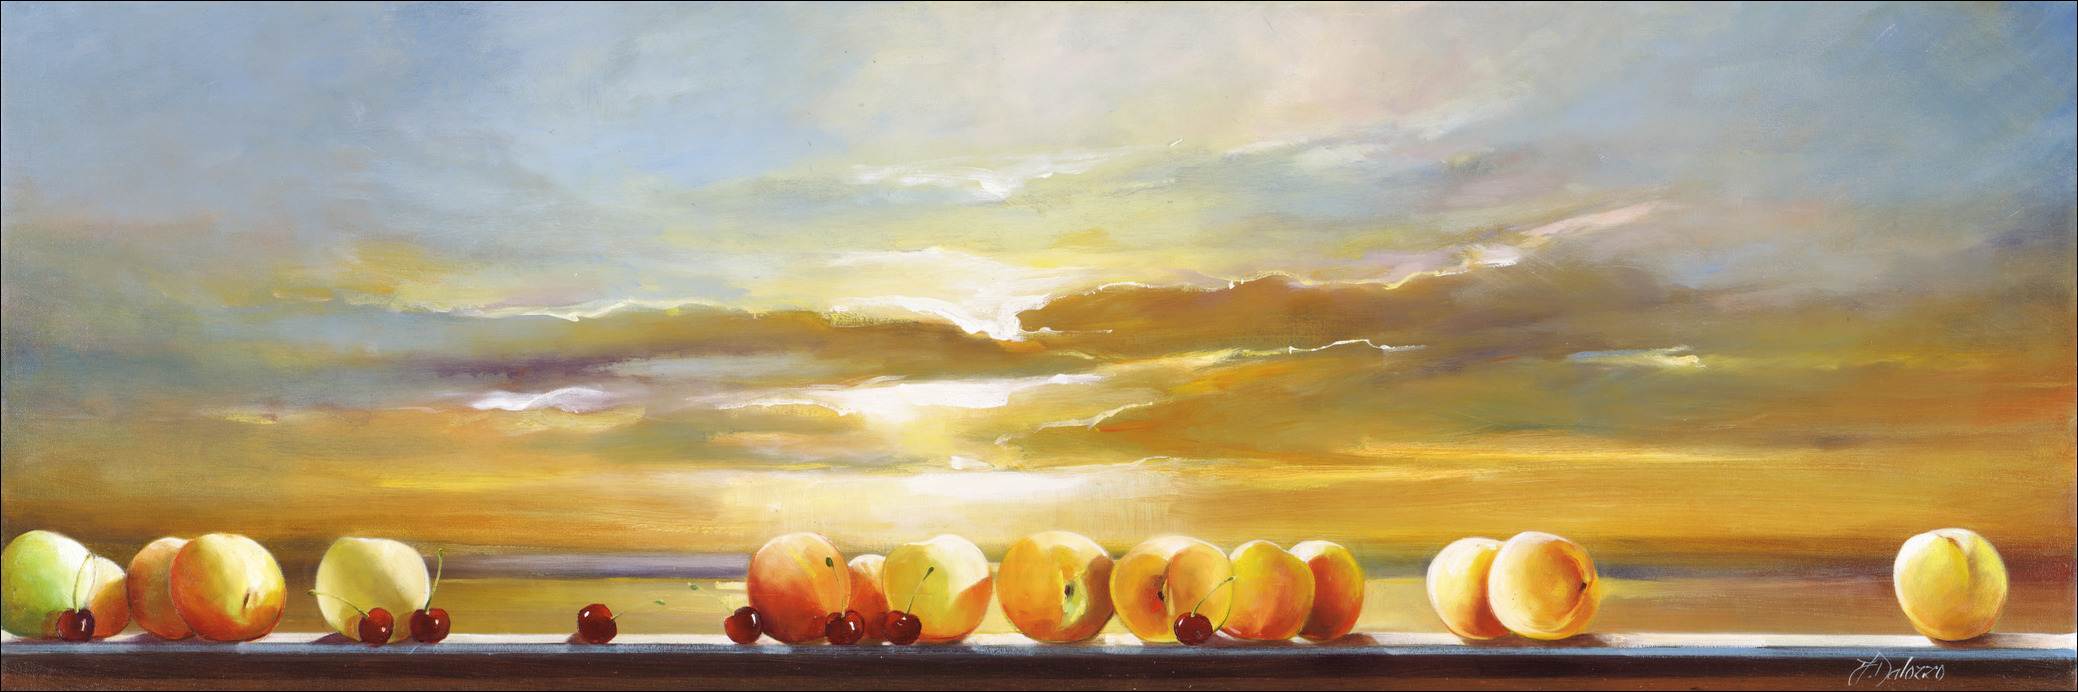 Peaches-Cherries-Sunset-Judith-Dalozzo